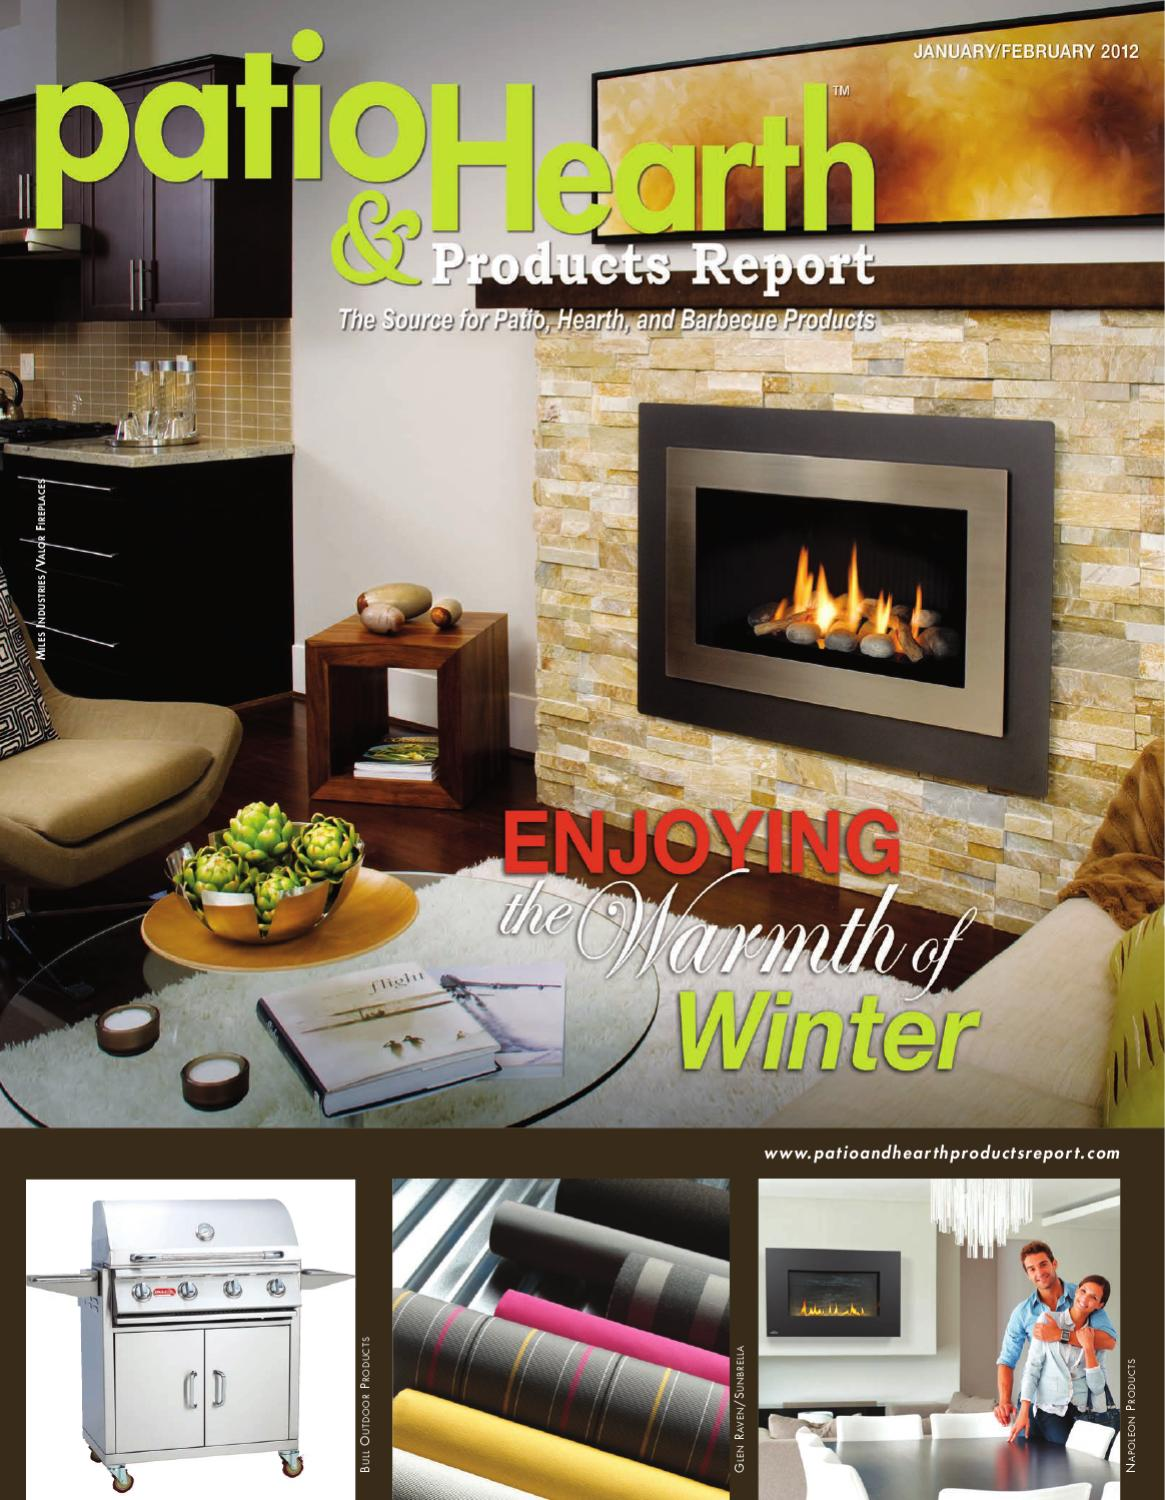 Remarkable Patio And Hearth Products Report Jan Feb 2012 By Peninsula Download Free Architecture Designs Salvmadebymaigaardcom